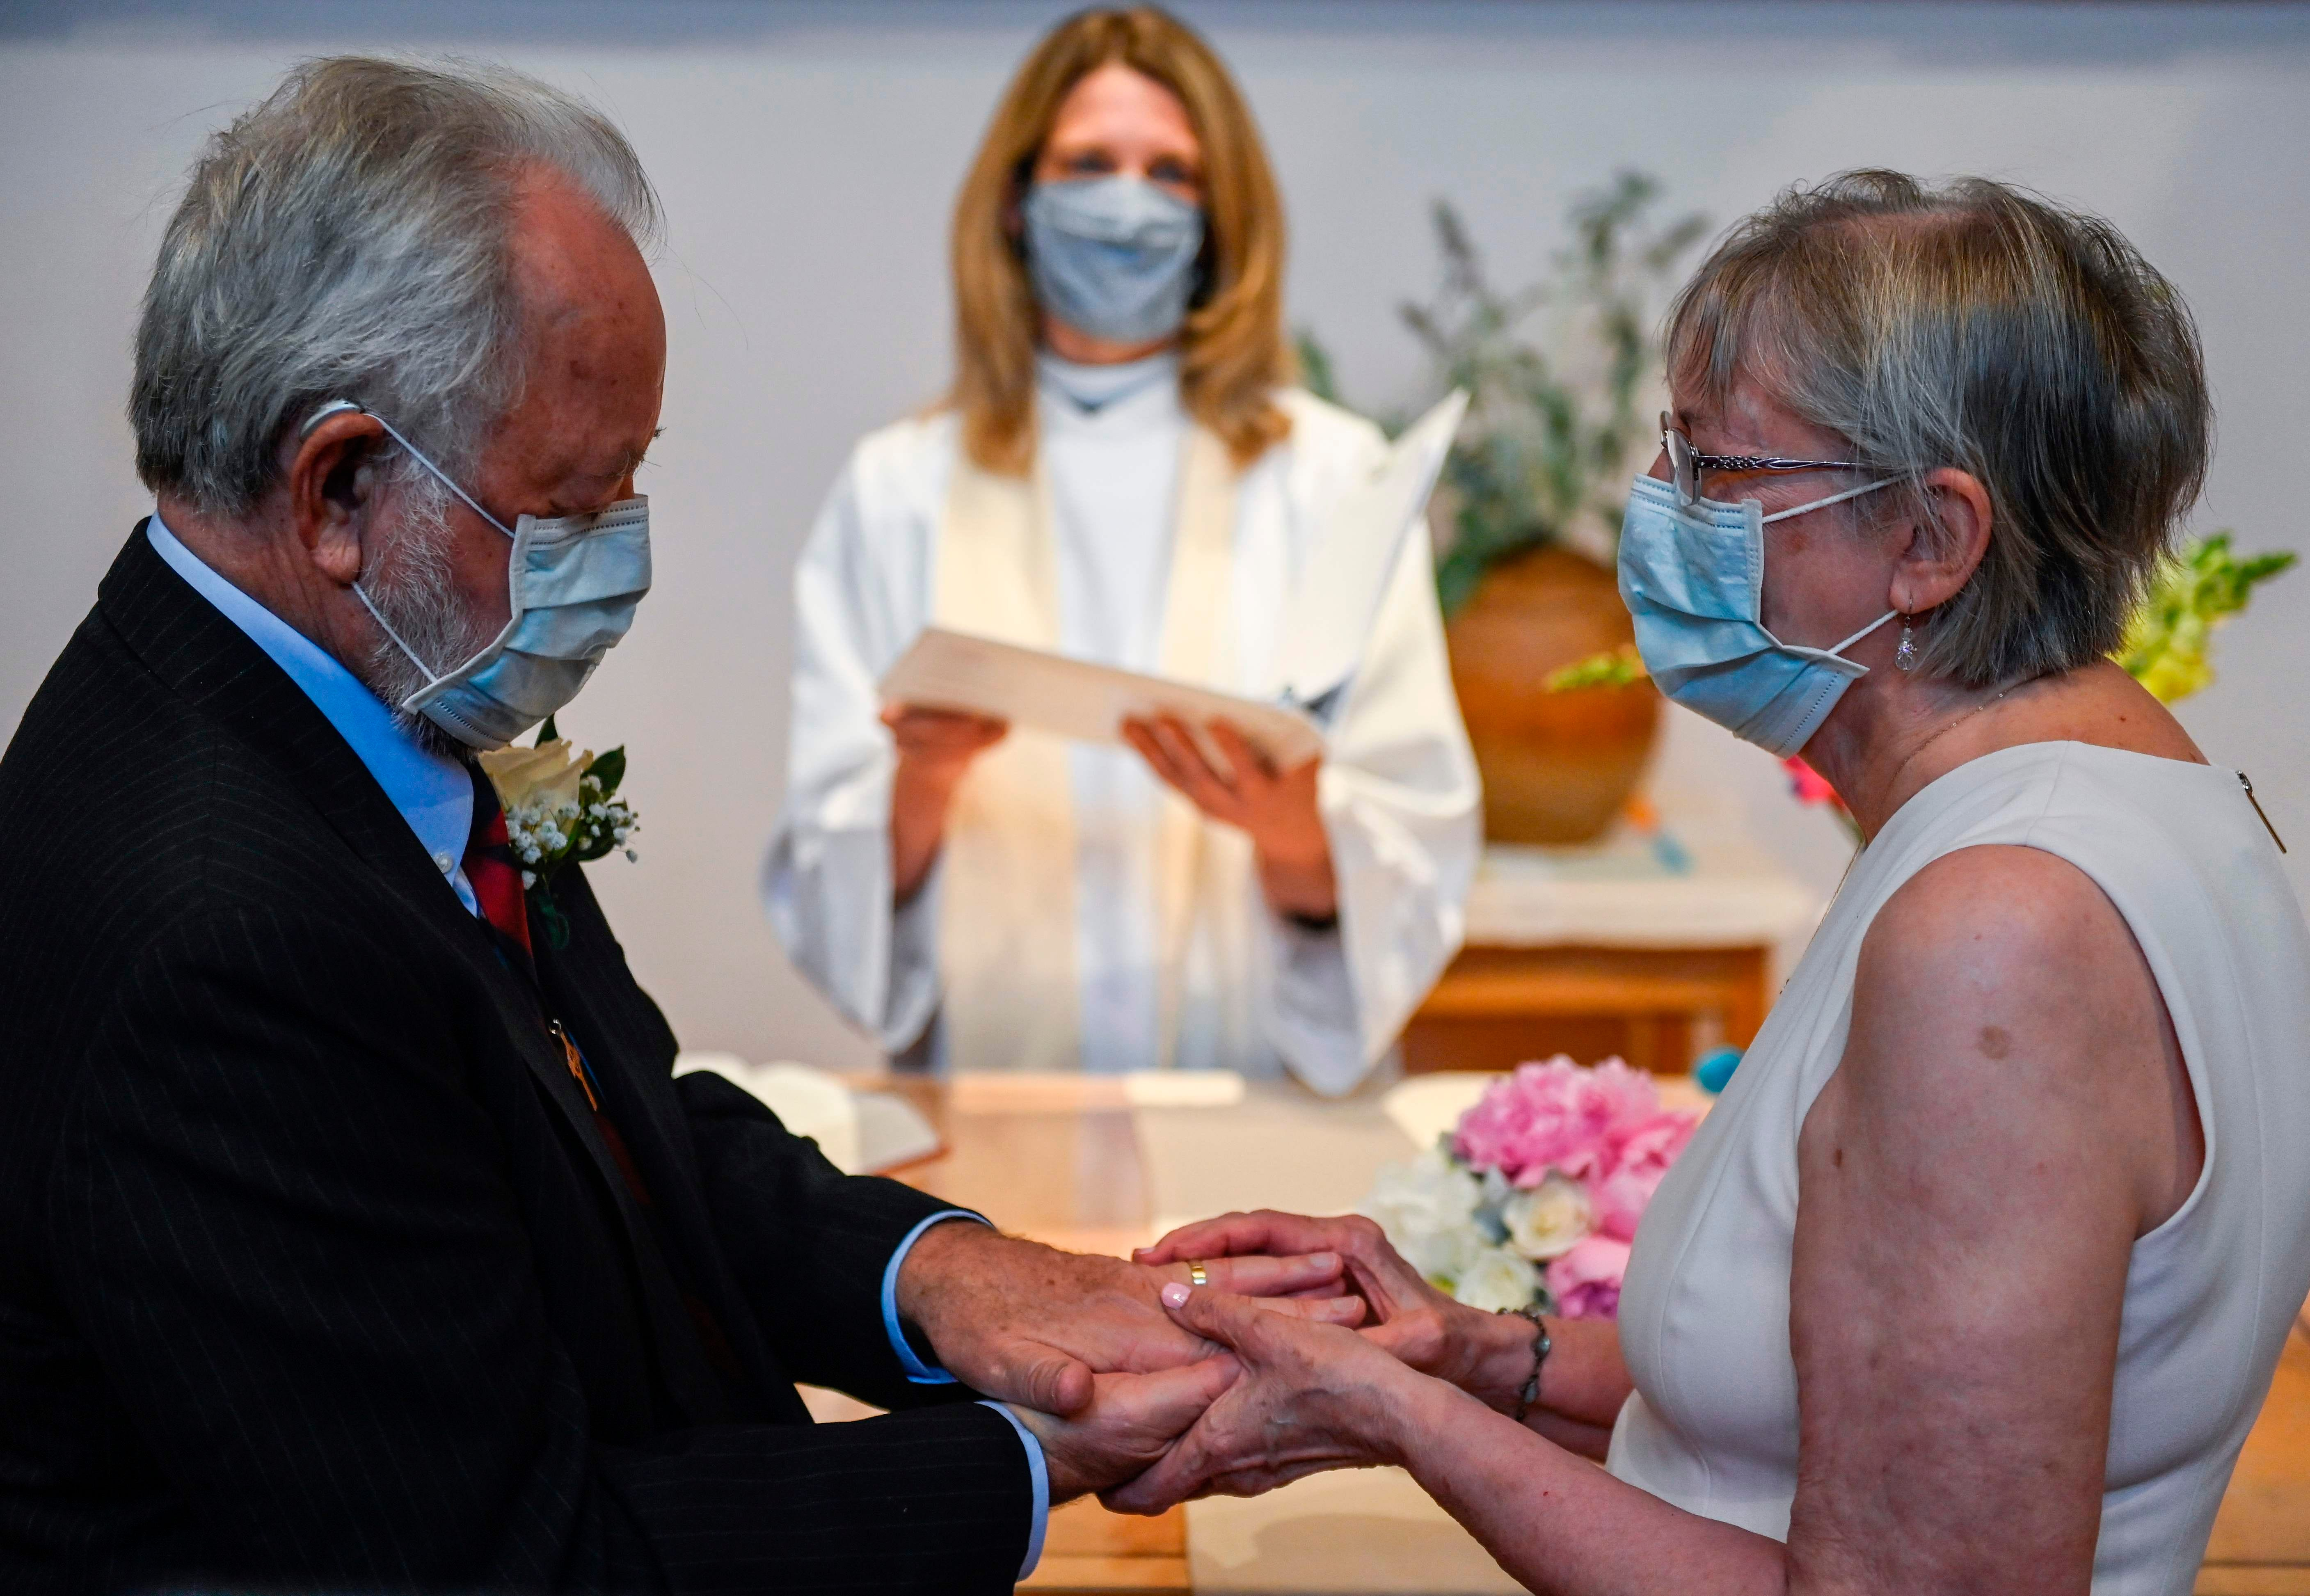 Spread love not germs: Sanitizer favors, disjointed seating and more planned for 2020 weddings